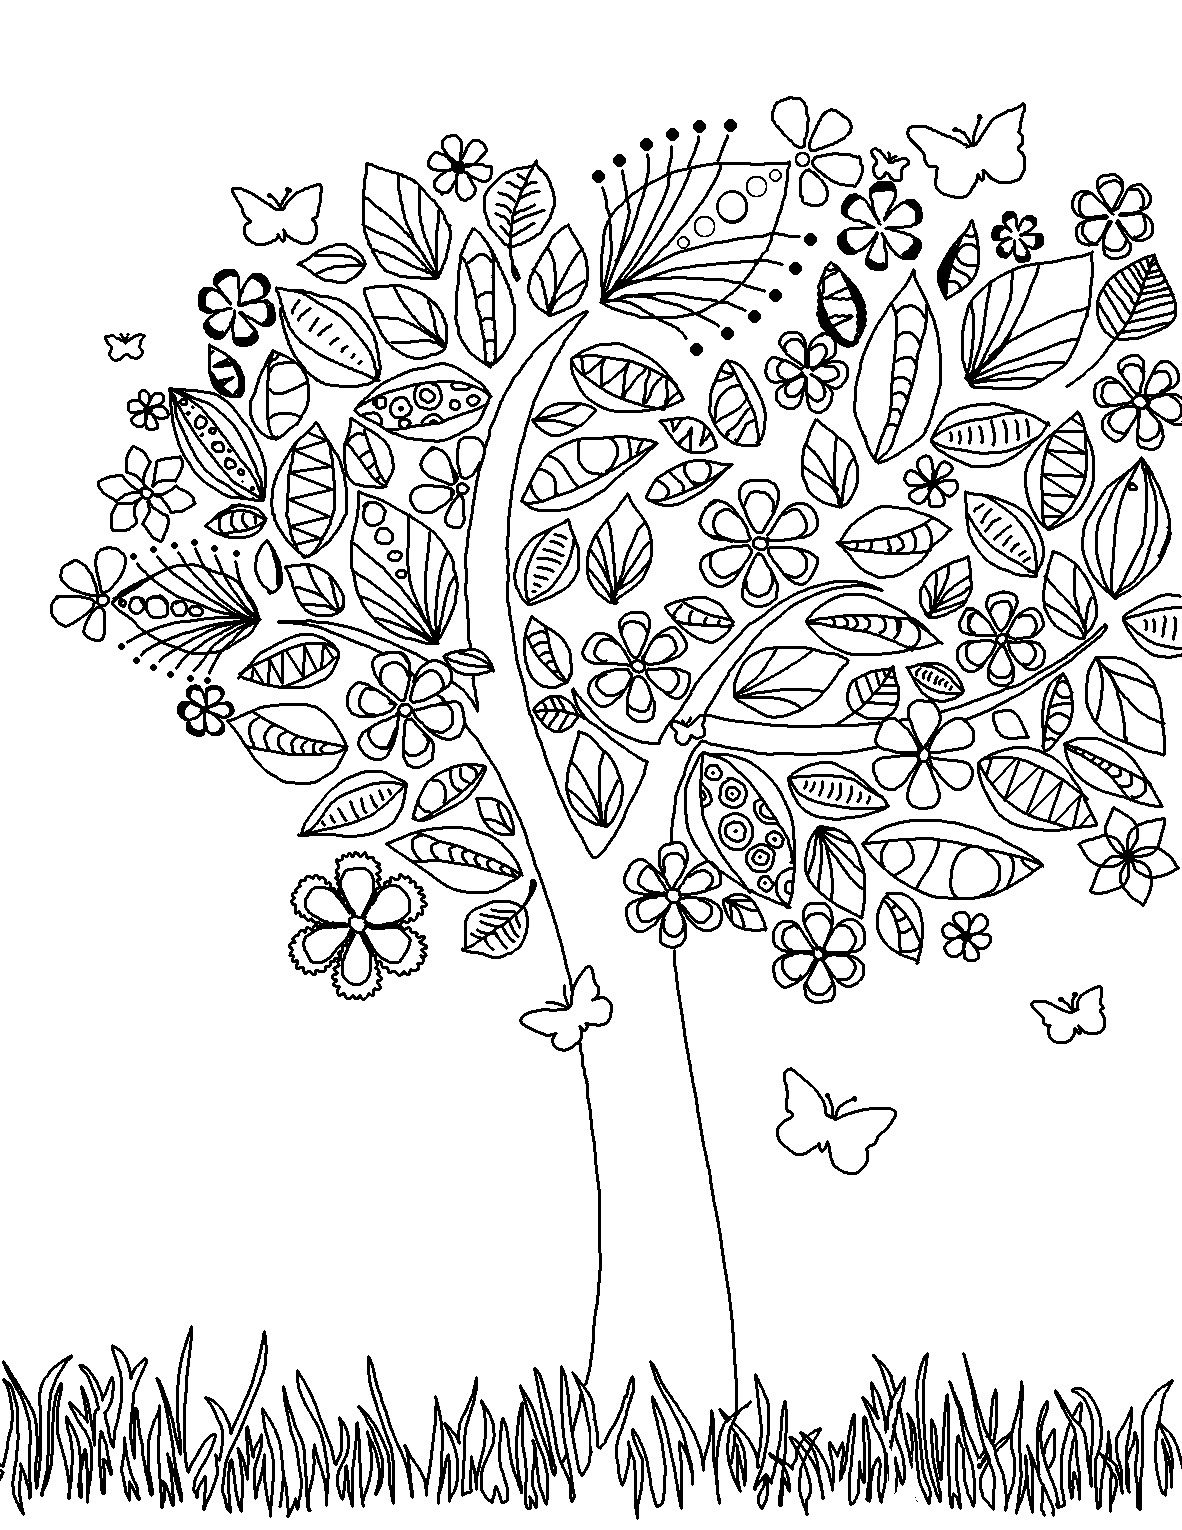 11 Abstract Designs To Color Images - Abstract Designs Coloring Pages, Abstract  Adult Coloring Pages and Abstract Designs Coloring Pages / Newdesignfile.com